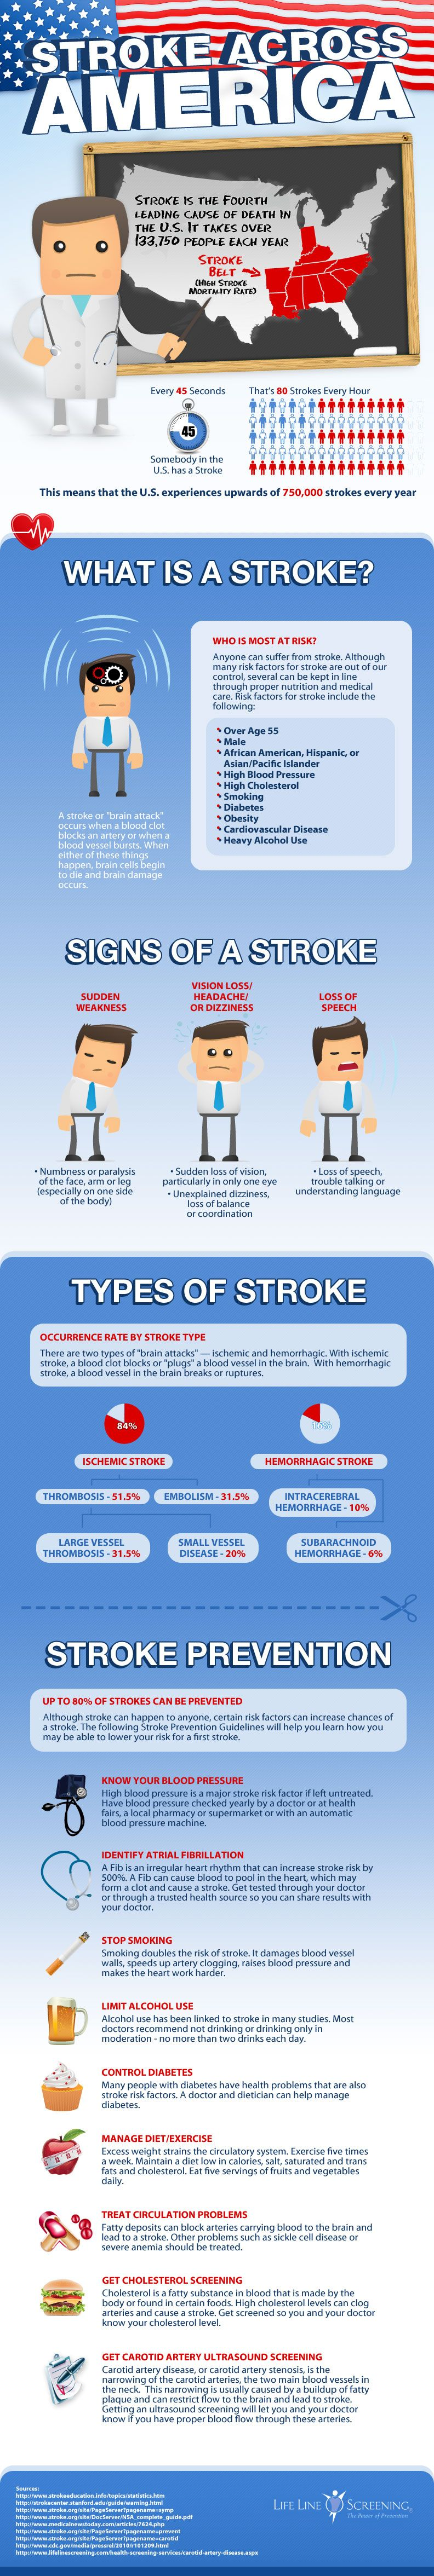 World Stroke Day Stroke Across America Slp Medical Neurology Infographic Medical Information Traumatic Brain Injury